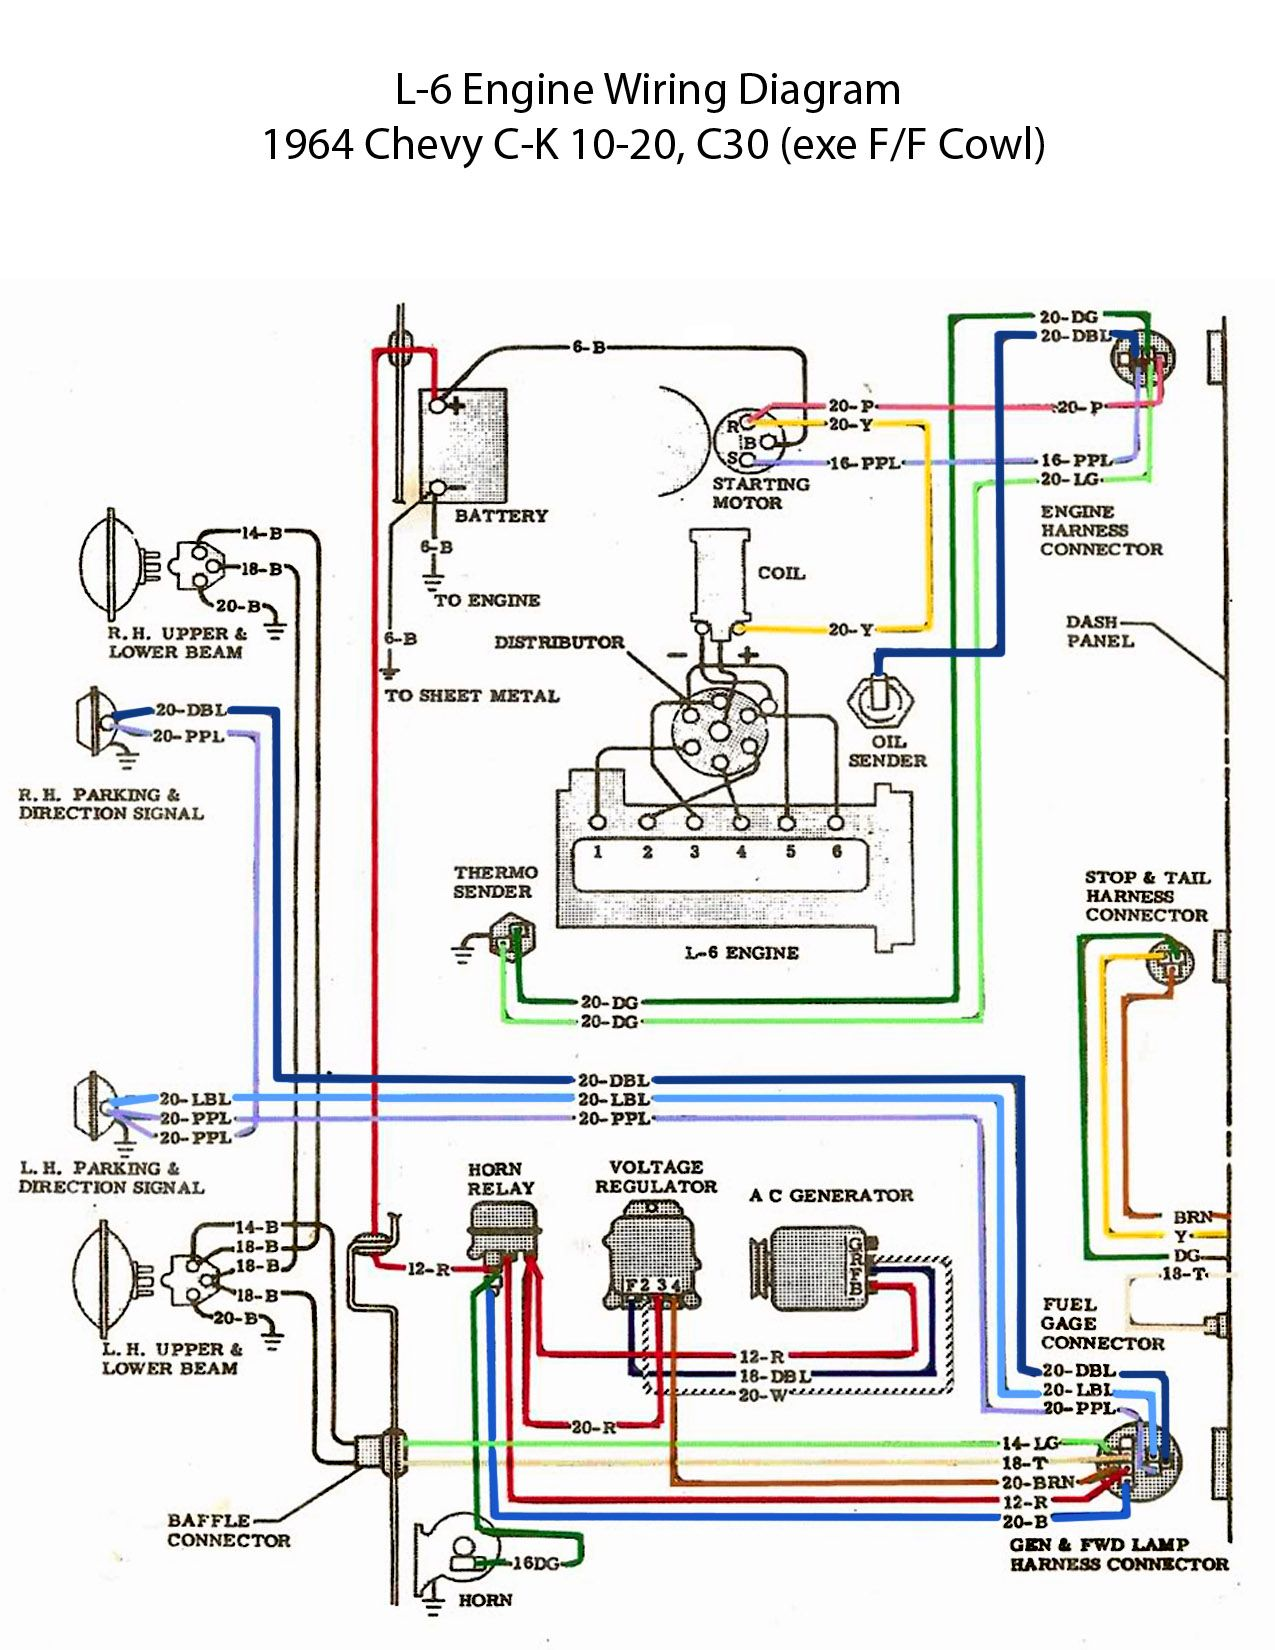 electric l 6 engine wiring diagram 60s chevy c10 wiring rh pinterest com chevy aveo engine wiring diagram 1987 chevy engine wiring diagram